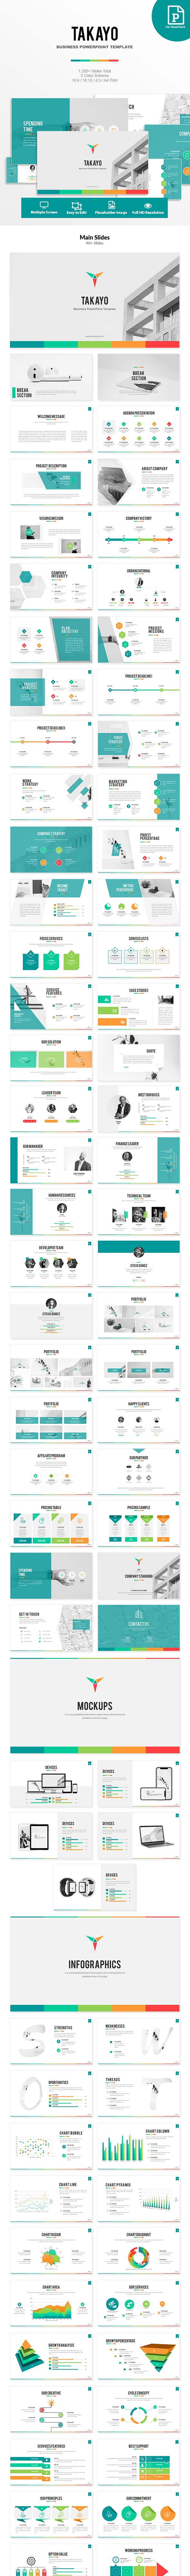 Takayo - Business PowerPoint Template - Business PowerPoint Templates